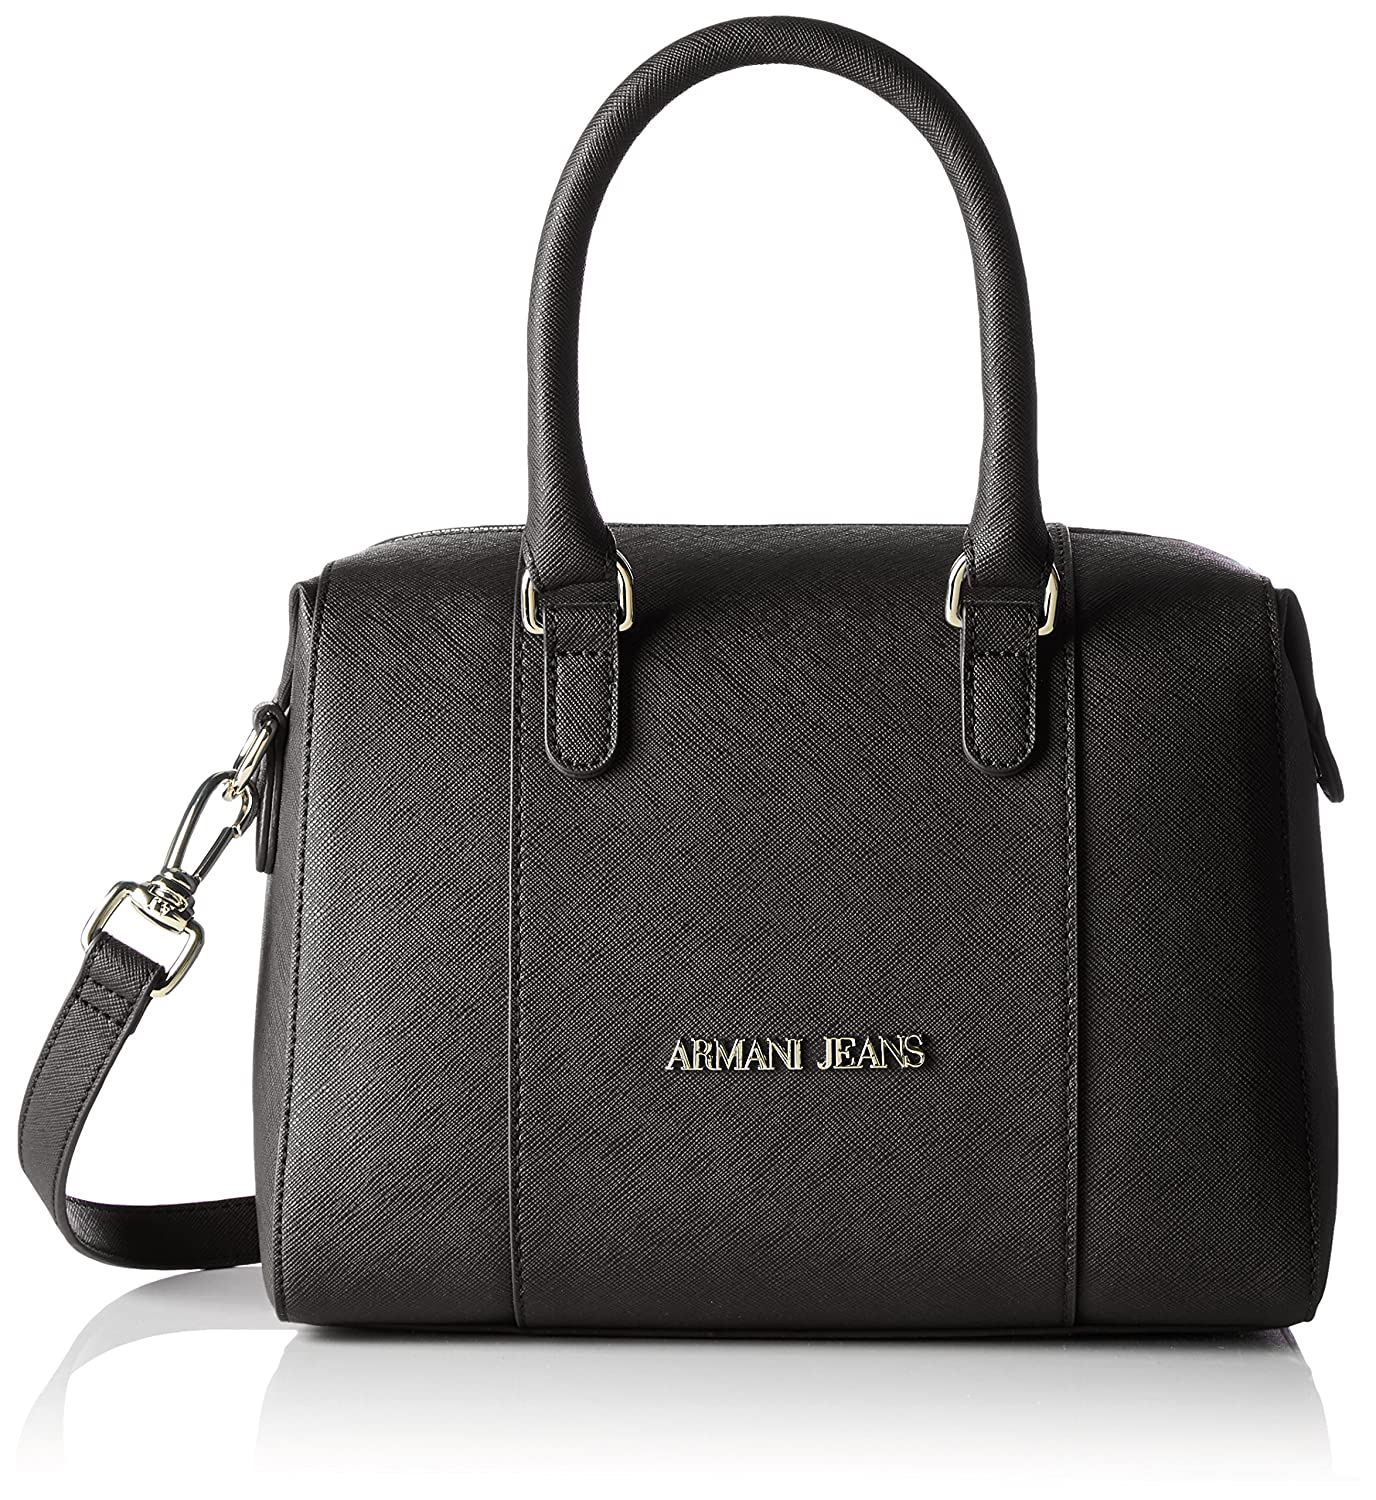 Borsa armani tracolla coccinella borse borsello gucci for Amazon borse louis vuitton